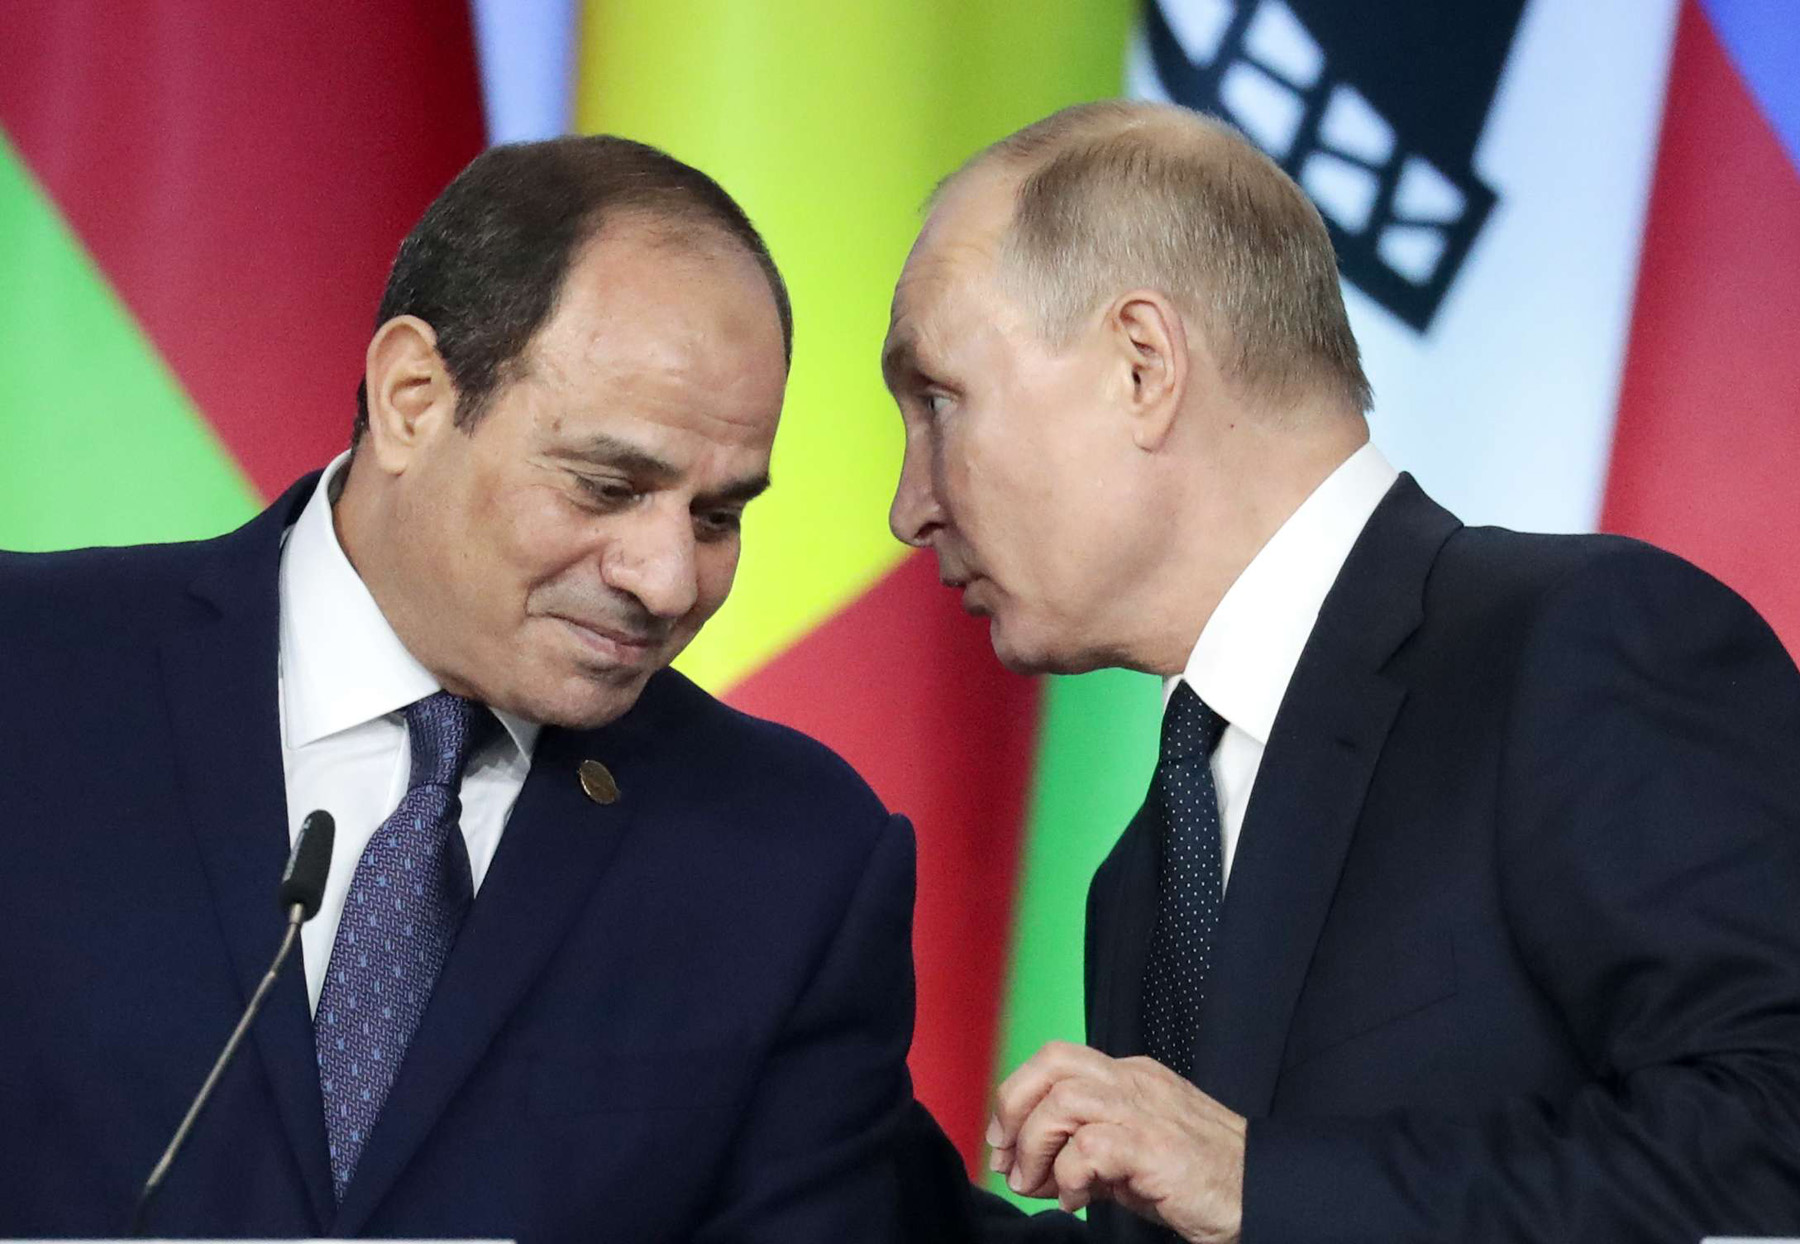 Russian President Vladimir Putin (R) speaks with Egyptian President Abdel Fattah al-Sisi at the Russia-Africa summit in Sochi, October 24. (AP)